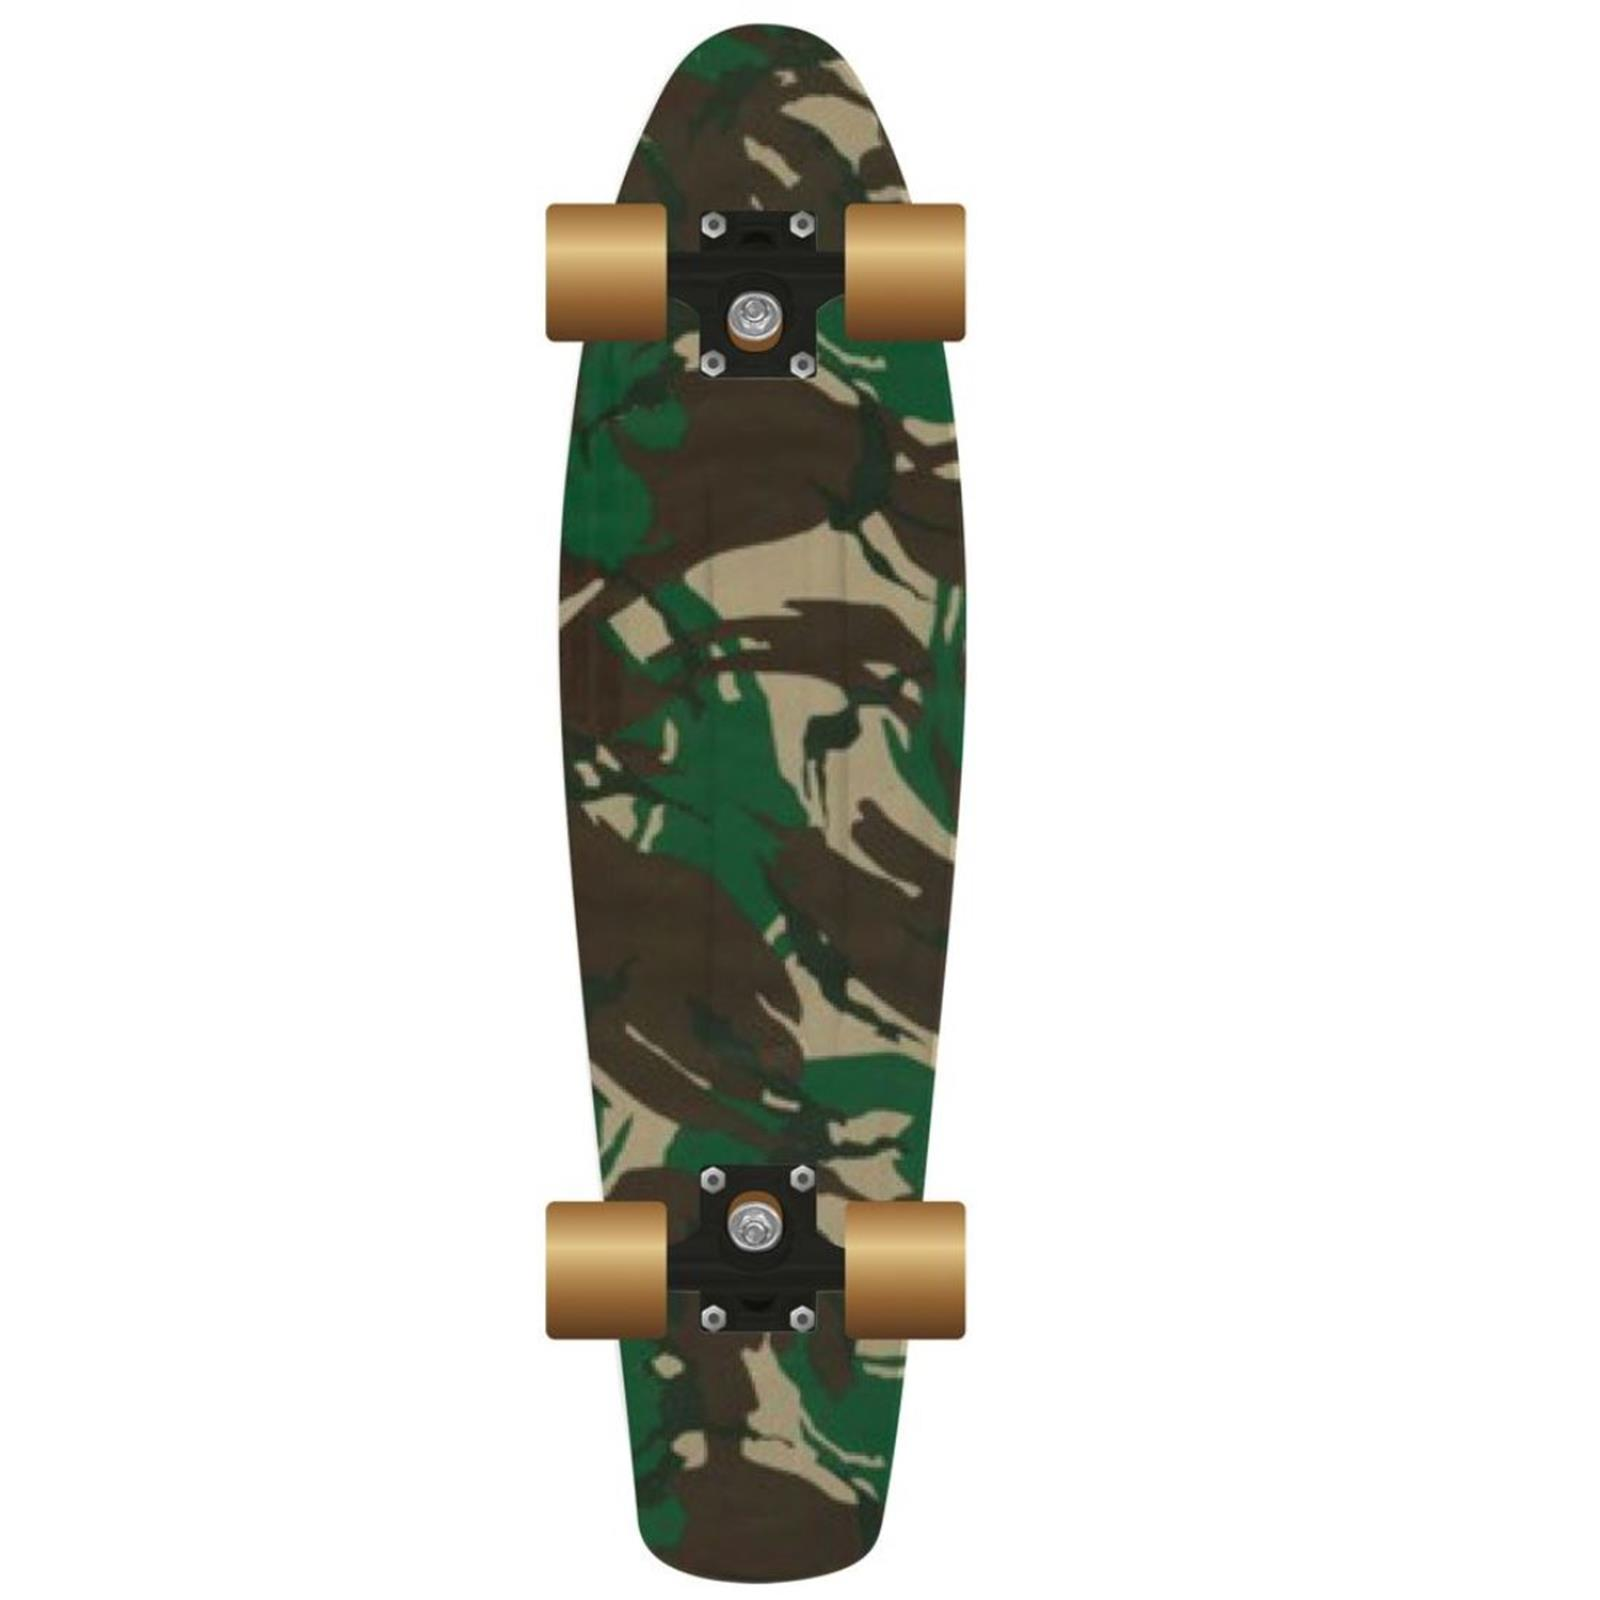 PROHIBITION Retro Plastic Skateboard 22.5 Street C